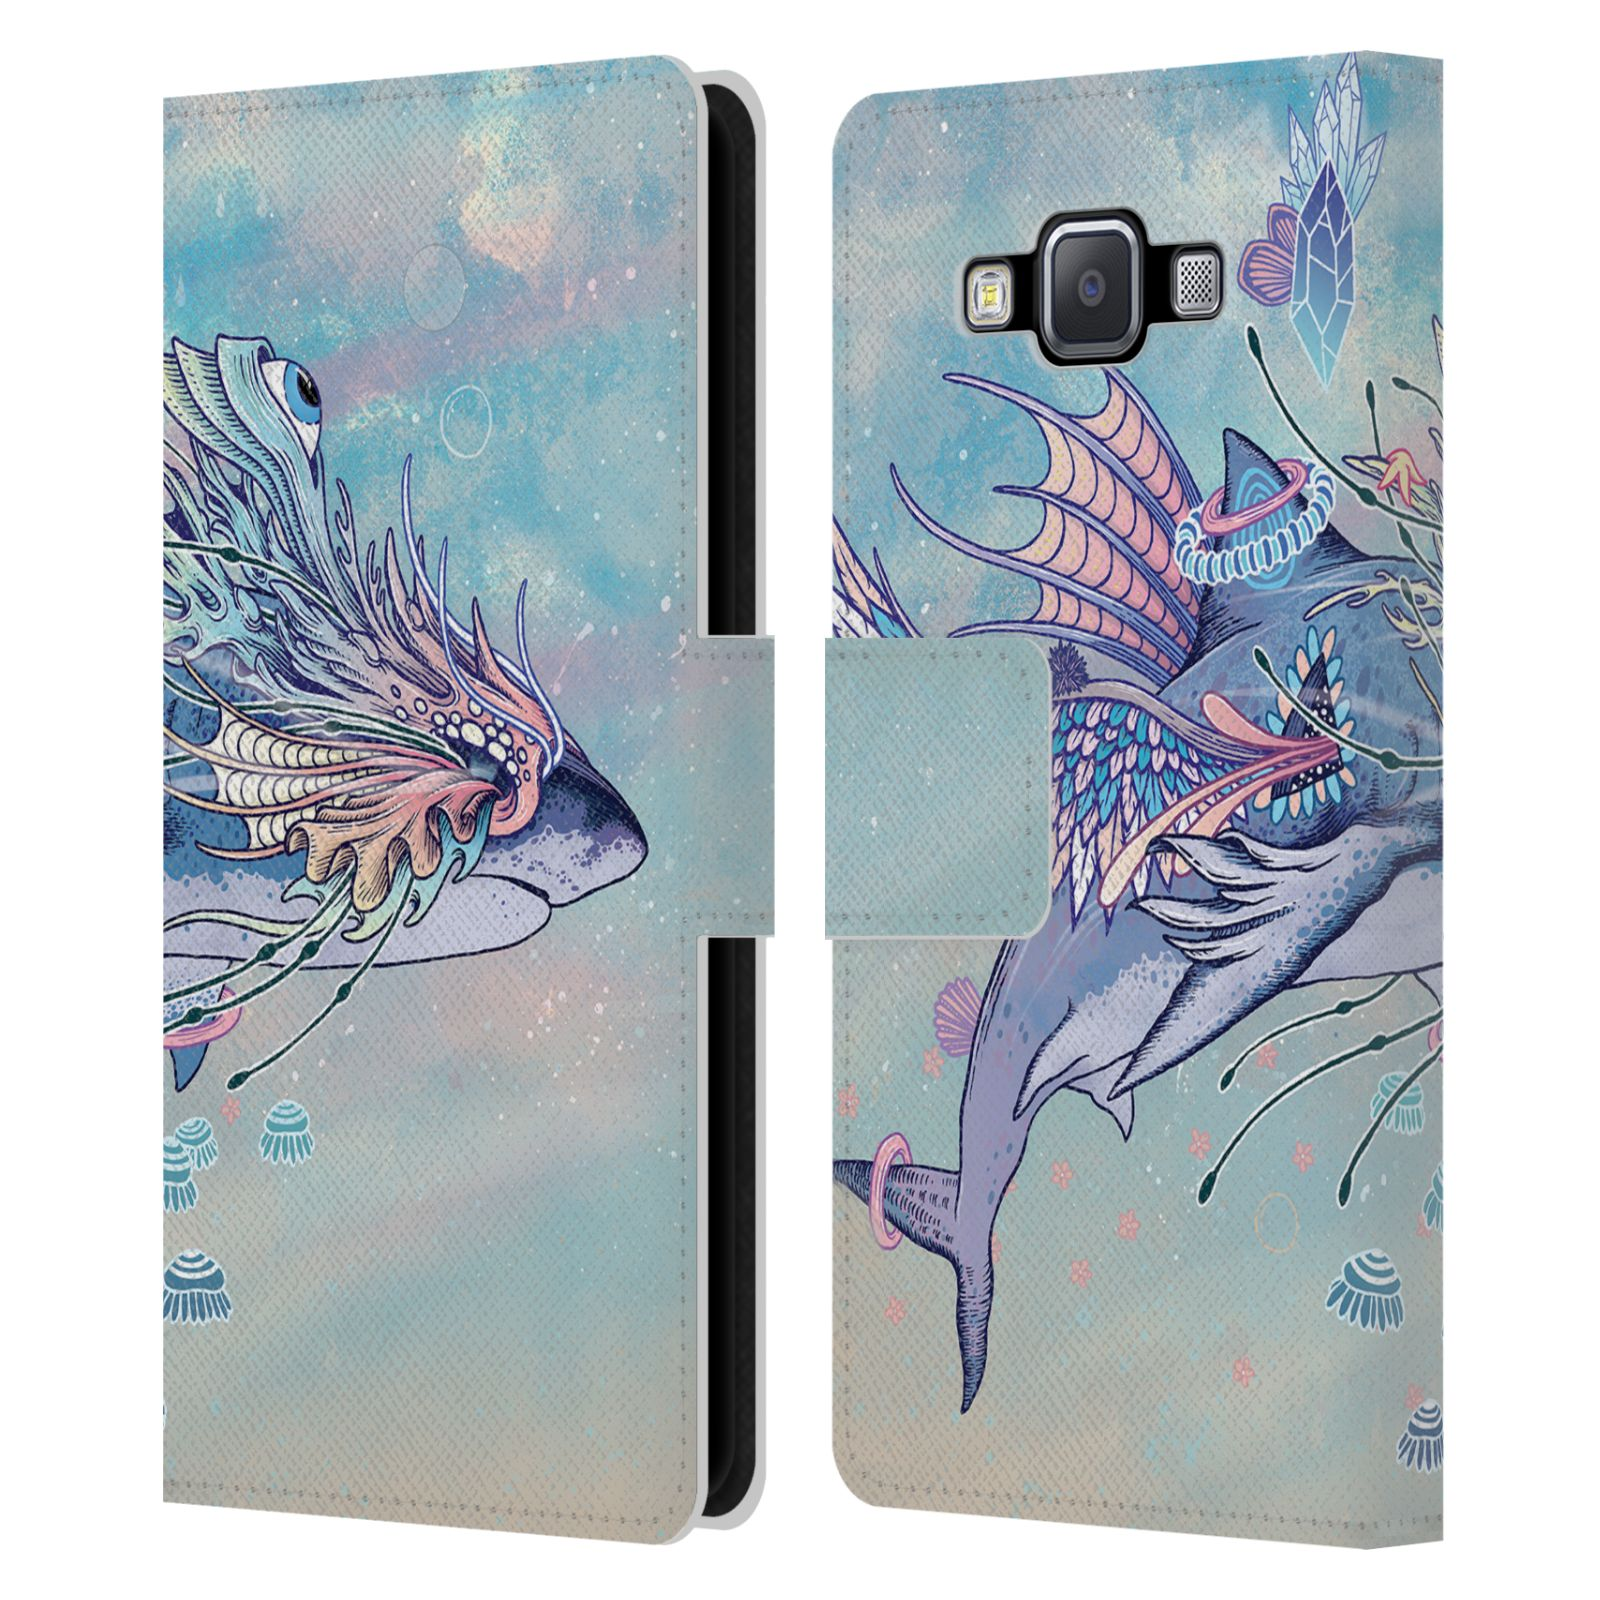 OFFICIAL-MAT-MILLER-ANIMALS-2-LEATHER-BOOK-WALLET-CASE-FOR-SAMSUNG-PHONES-2